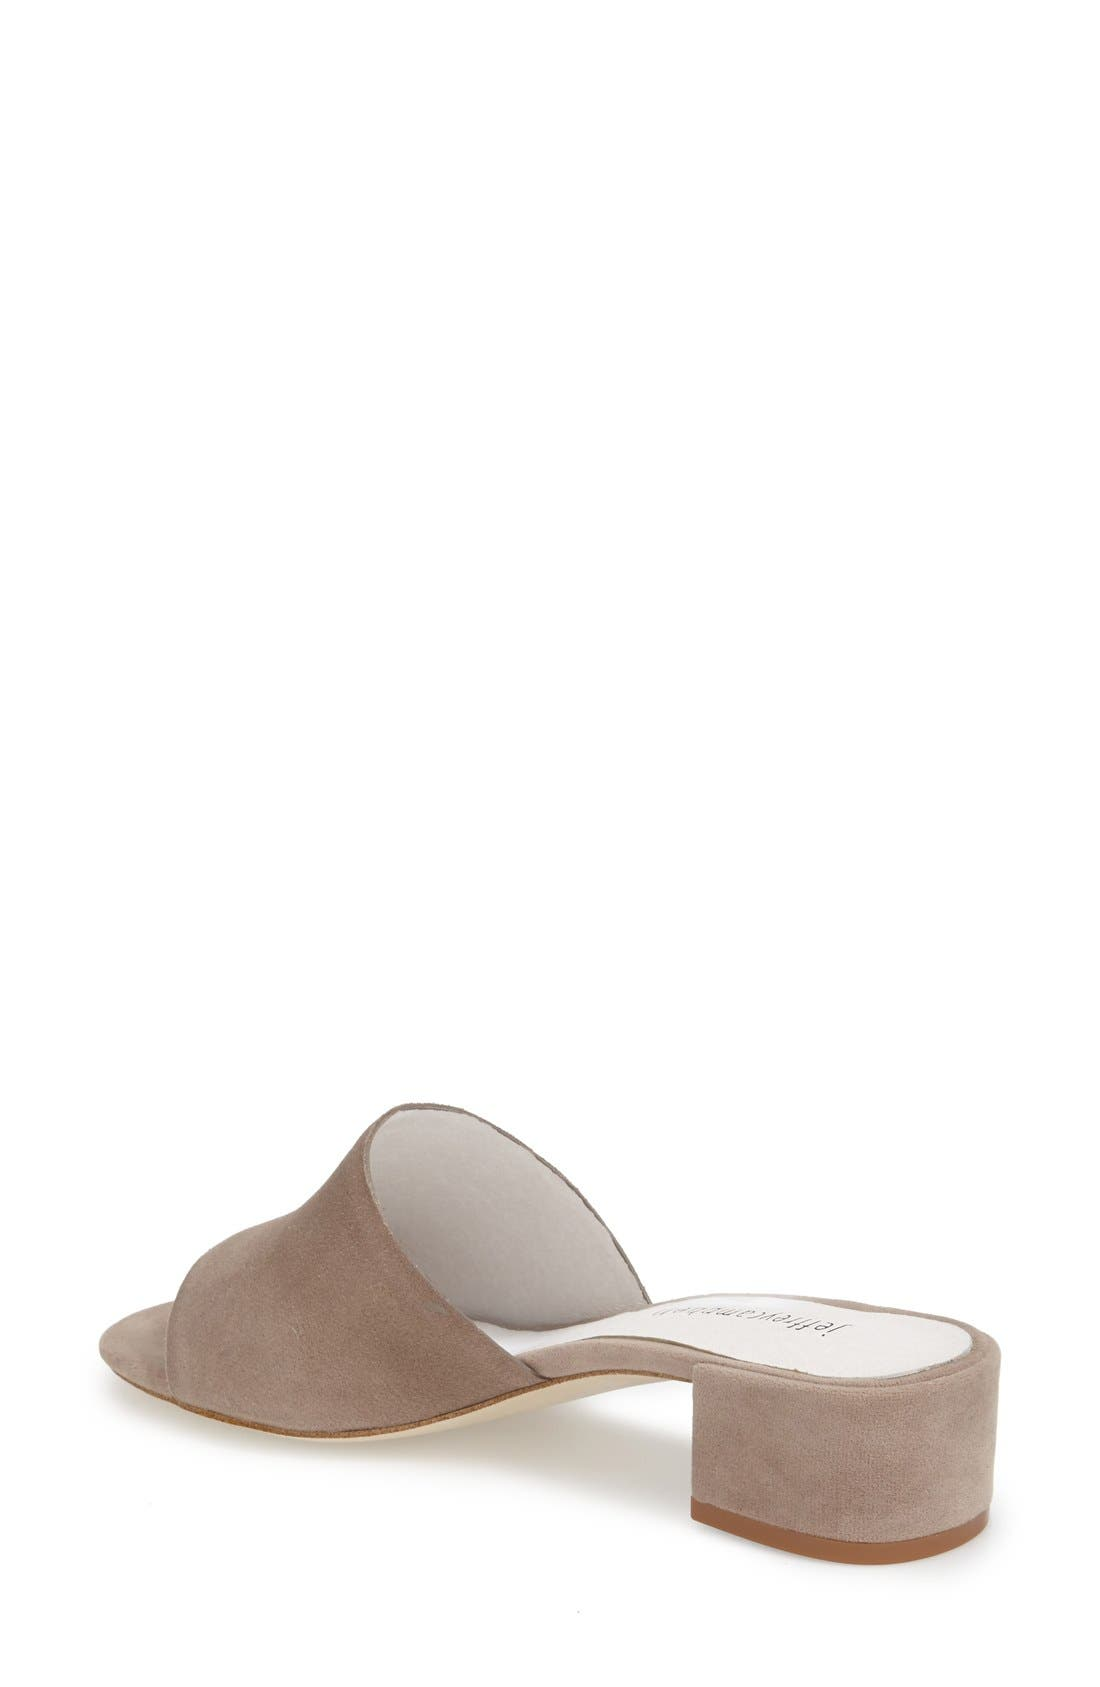 'Beaton' Slide Sandal,                             Alternate thumbnail 16, color,